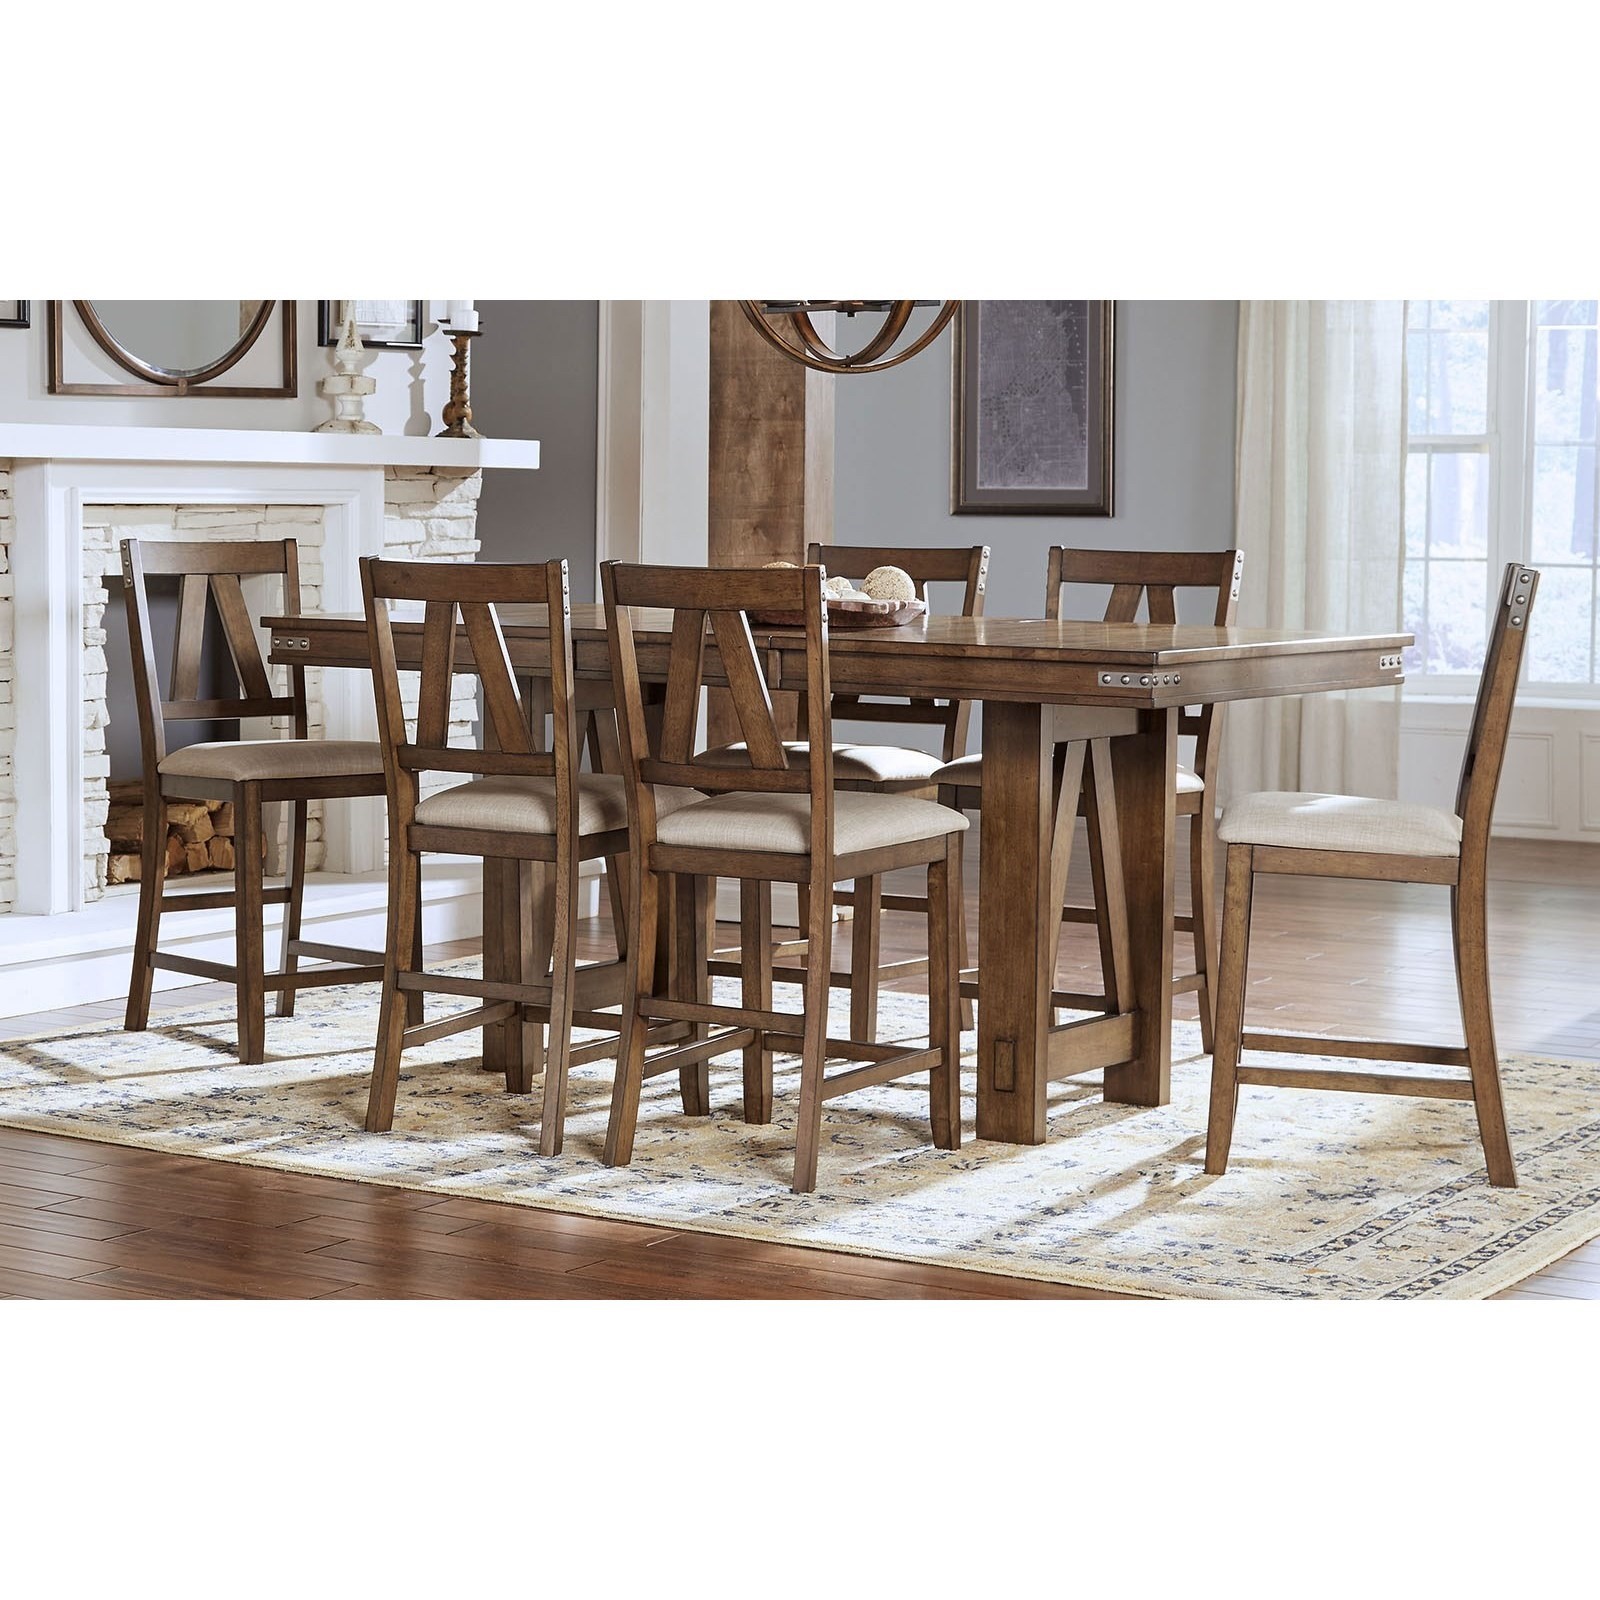 Aamerica Eastwood Dining Solid Wood Counter Height Table With Butterfly Leaf And 6 Upholstered Side Chairs Wayside Furniture Pub Table And Stool Sets